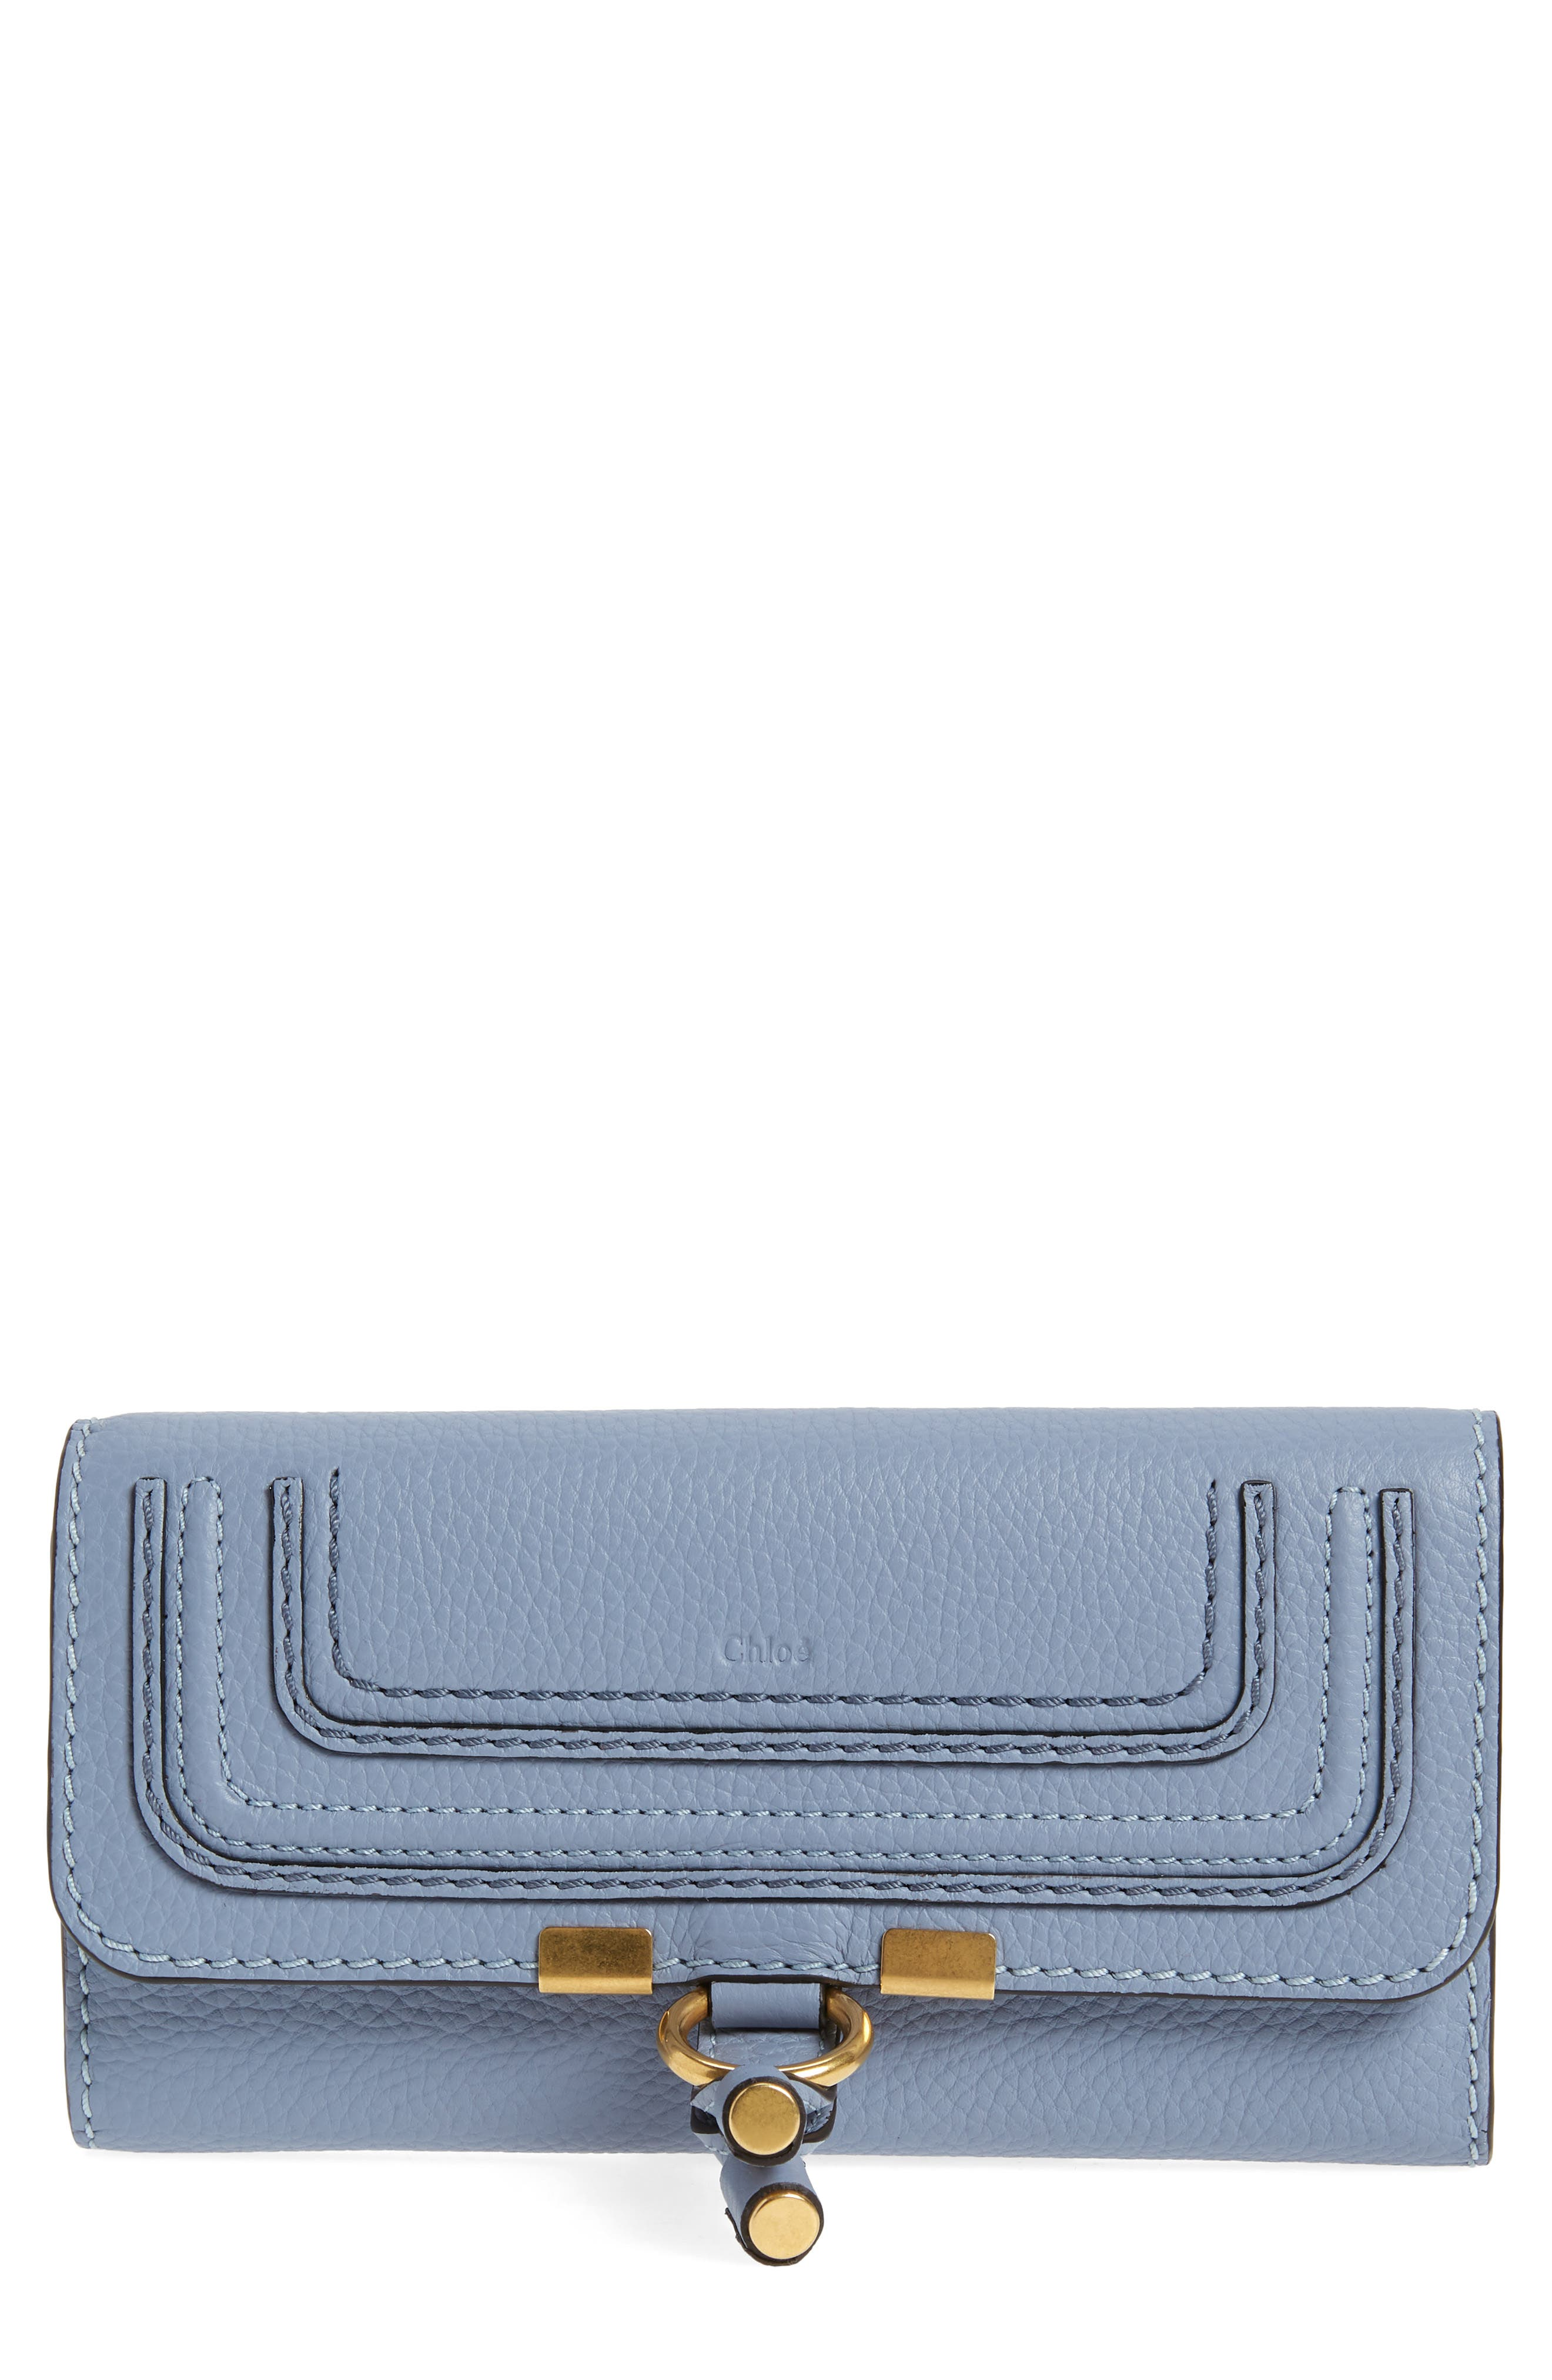 Marcie - Long Leather Flap Wallet,                         Main,                         color, WASHED BLUE